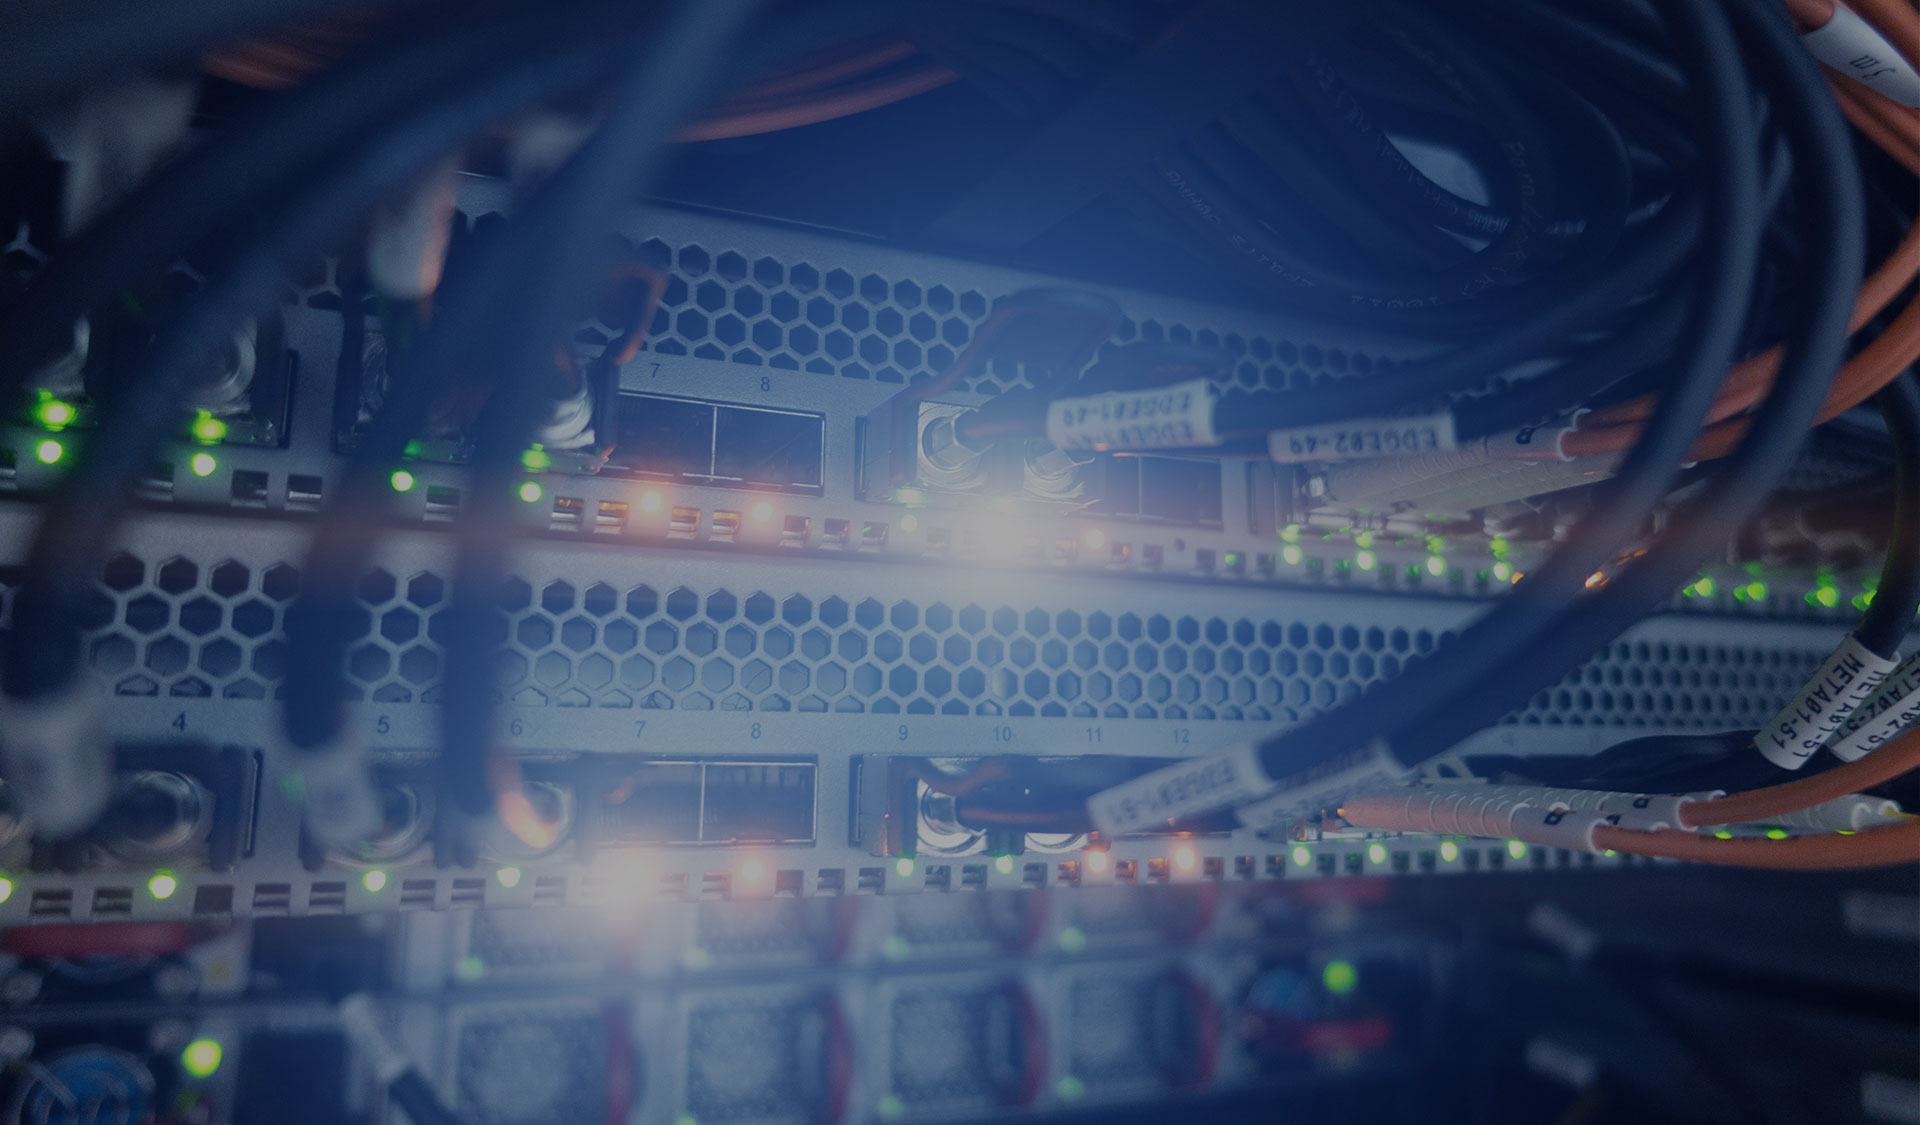 A view of a server with data and voice cabling